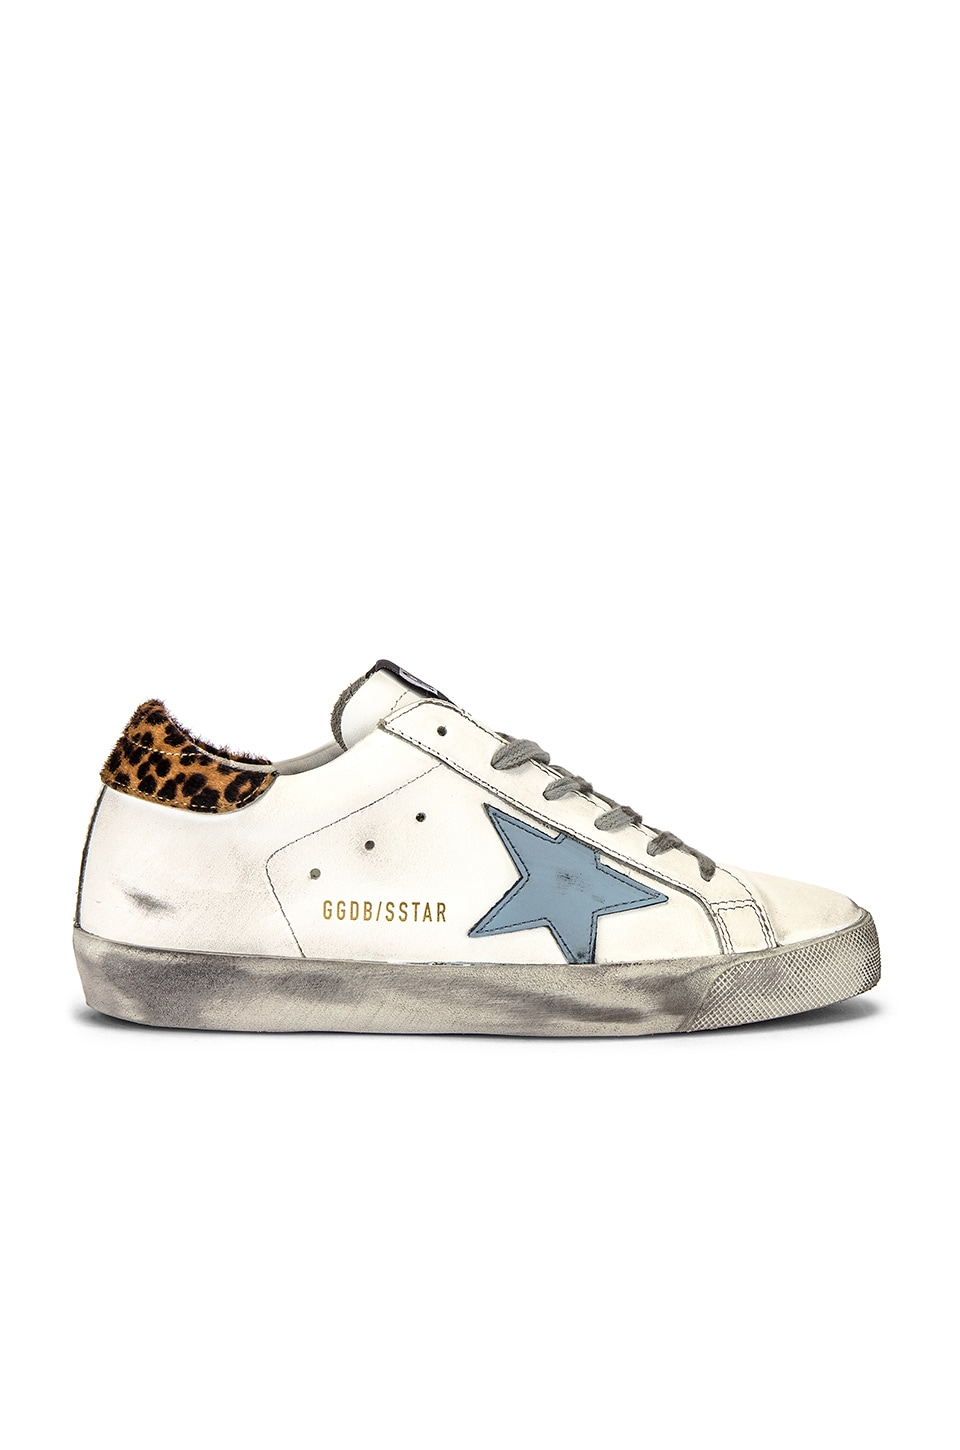 Golden Goose Superstar Sneaker in White, Leopard & Night Blue